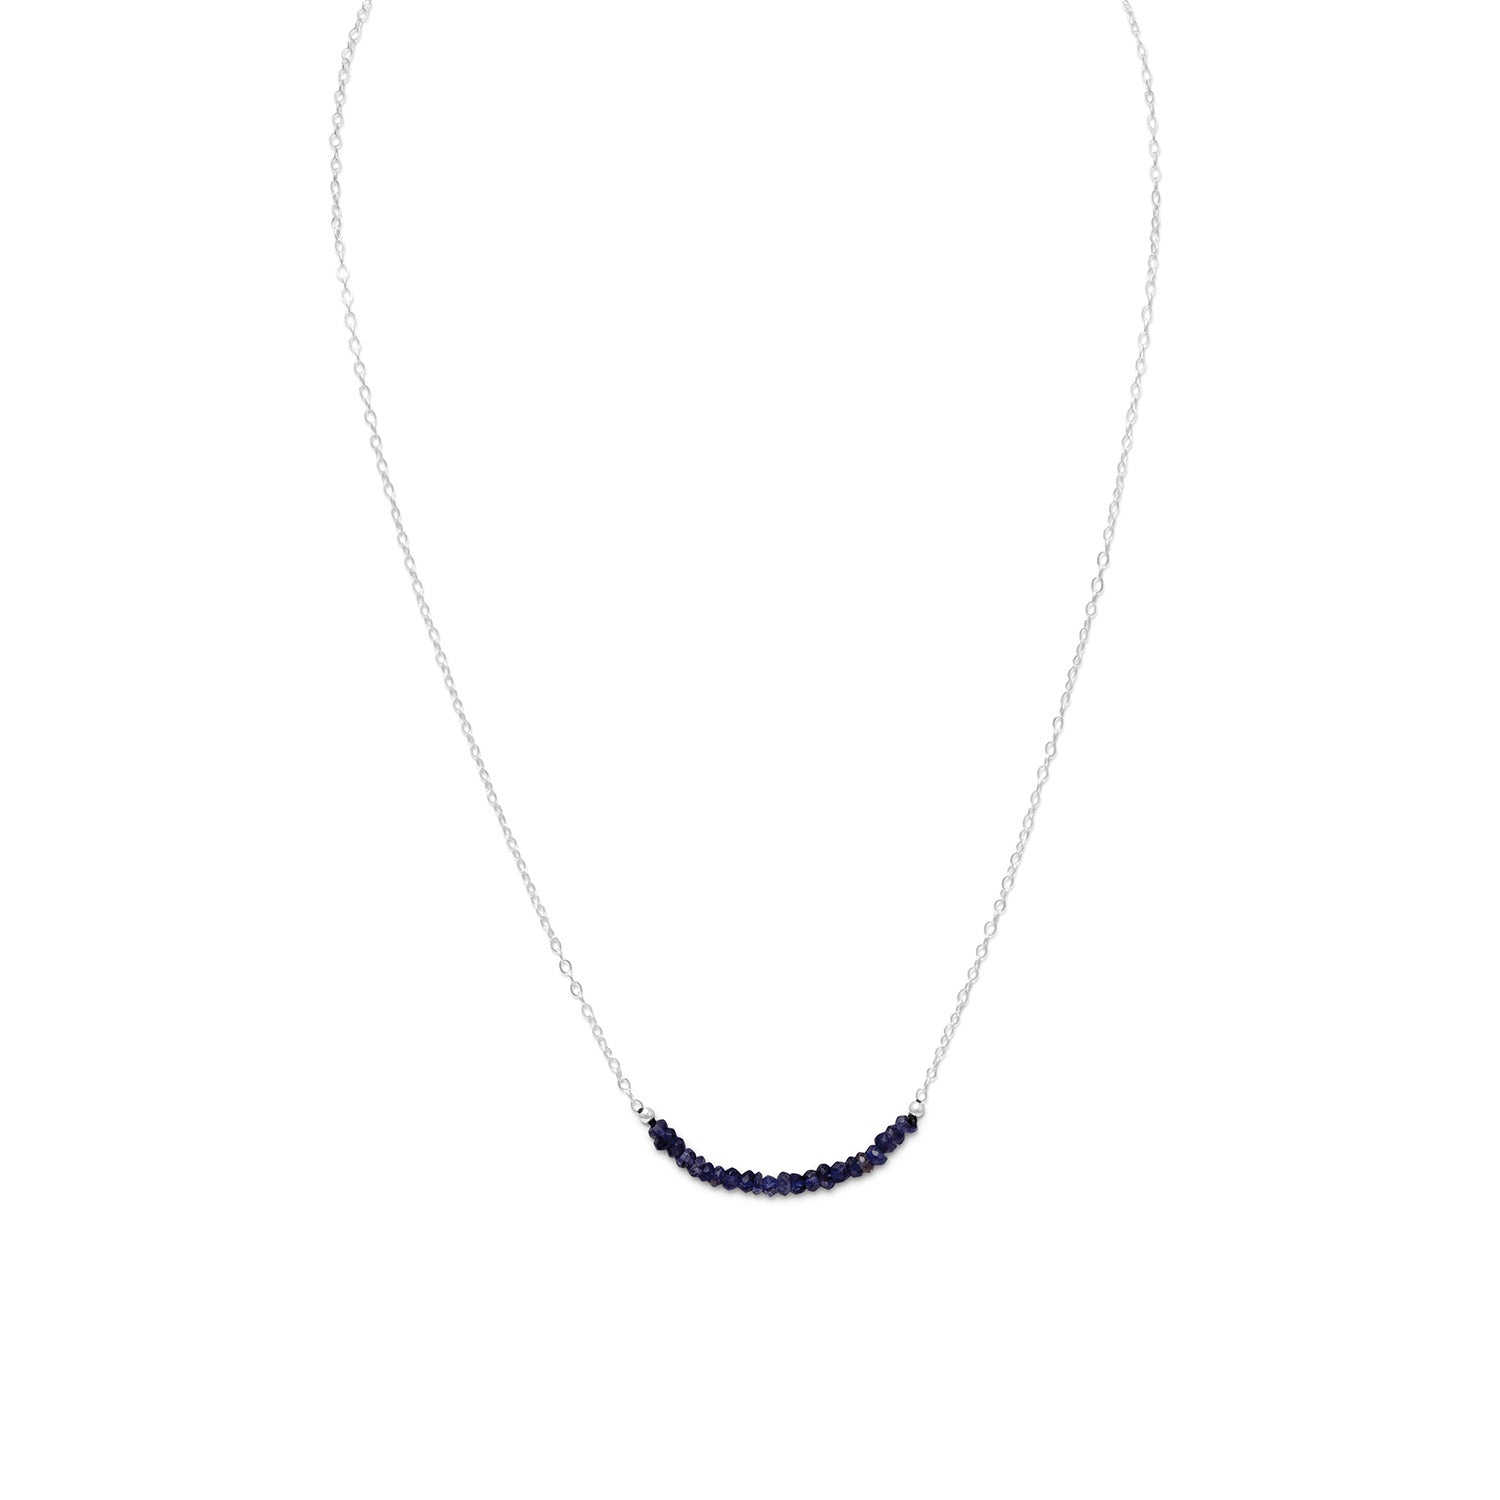 iolite lacom necklace en gems amberhoeve silver with